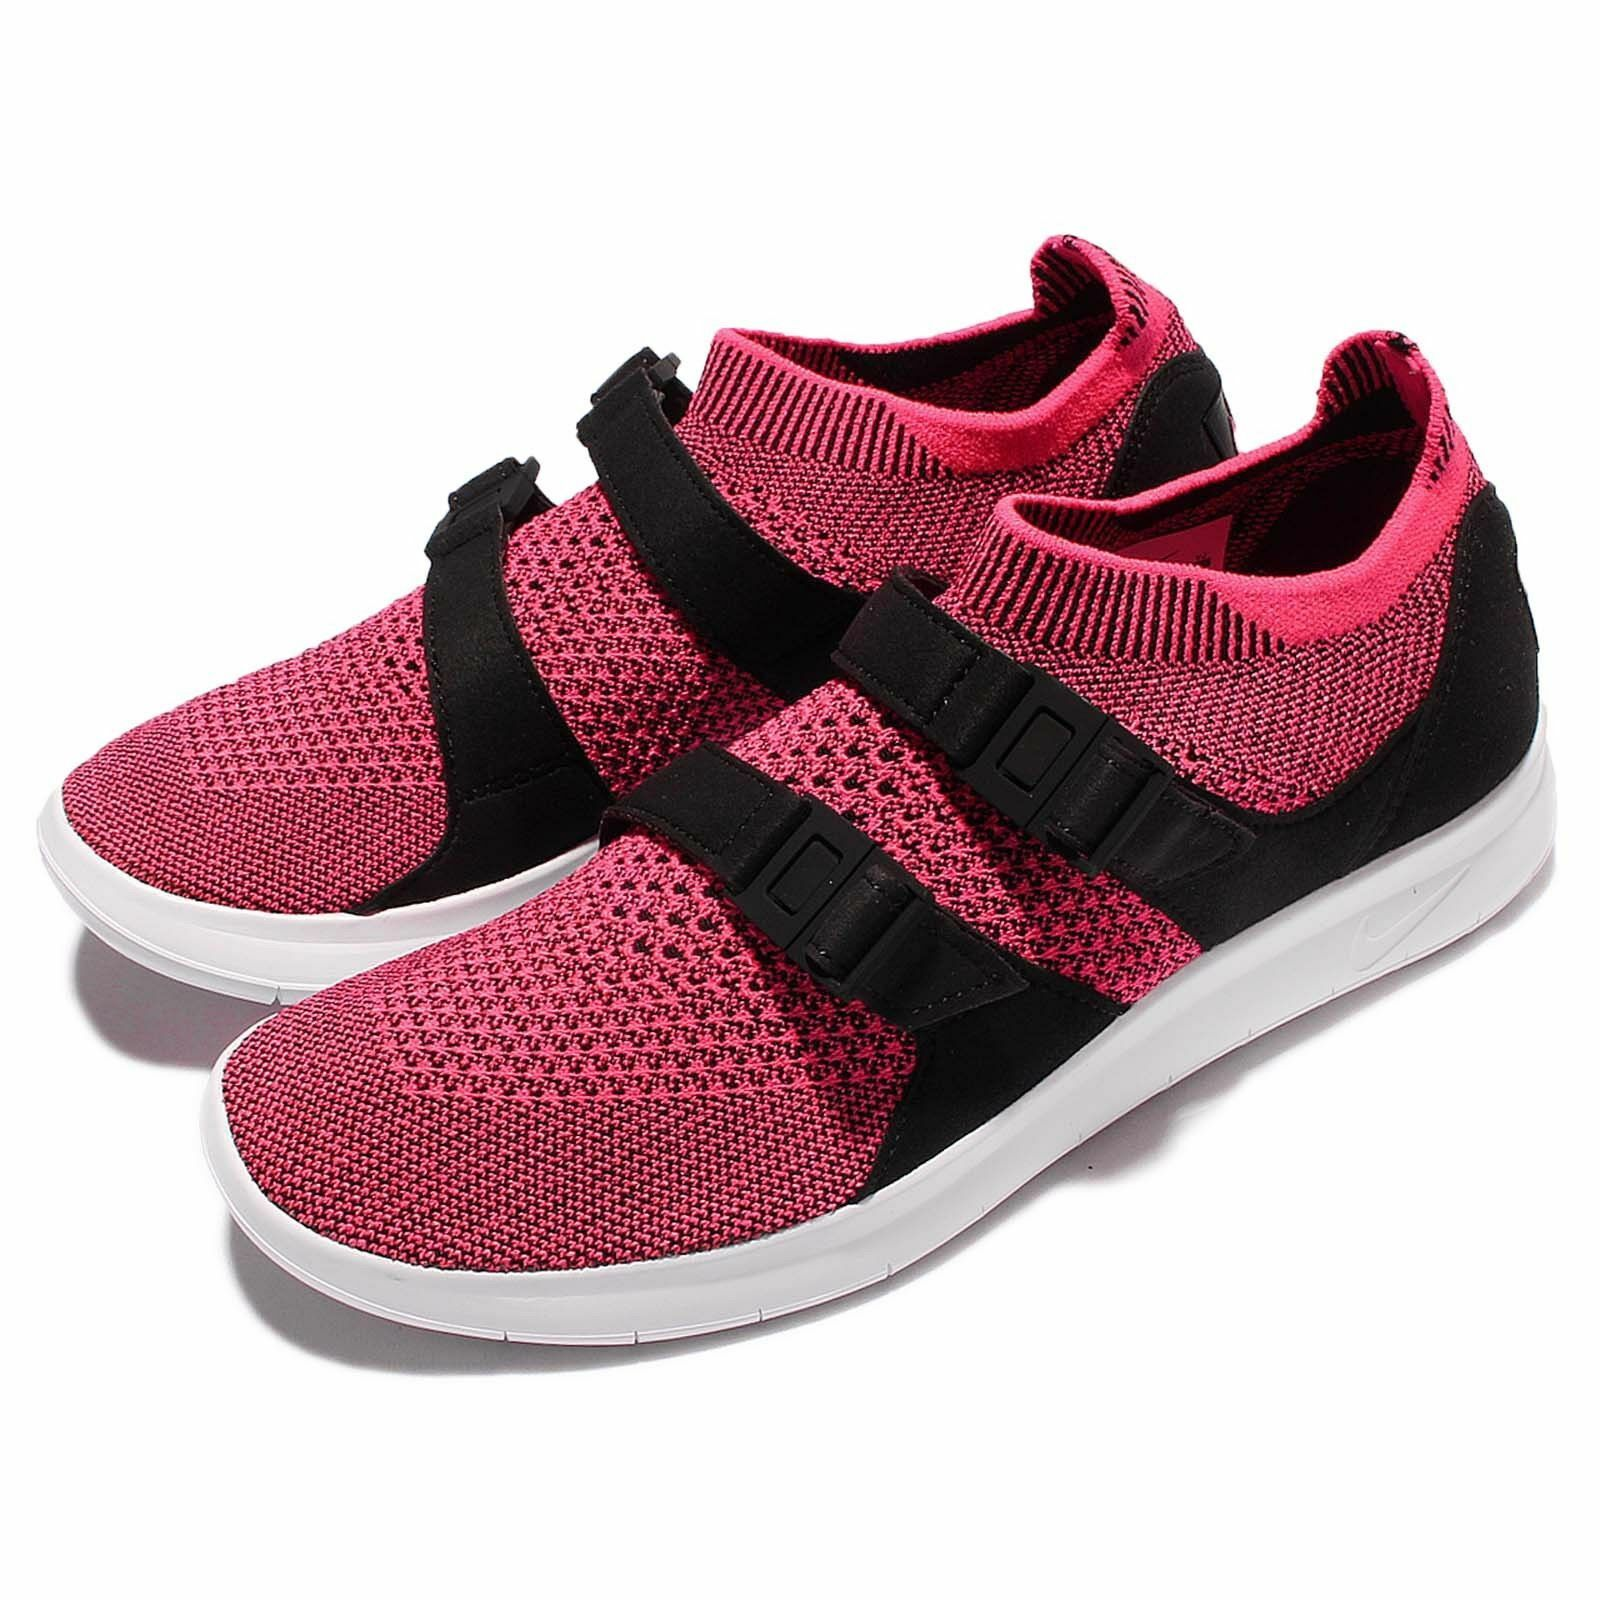 Nike Air Sock Racer Flyknit Womens Running shoes 896447-004 Black Pink Size 8.5